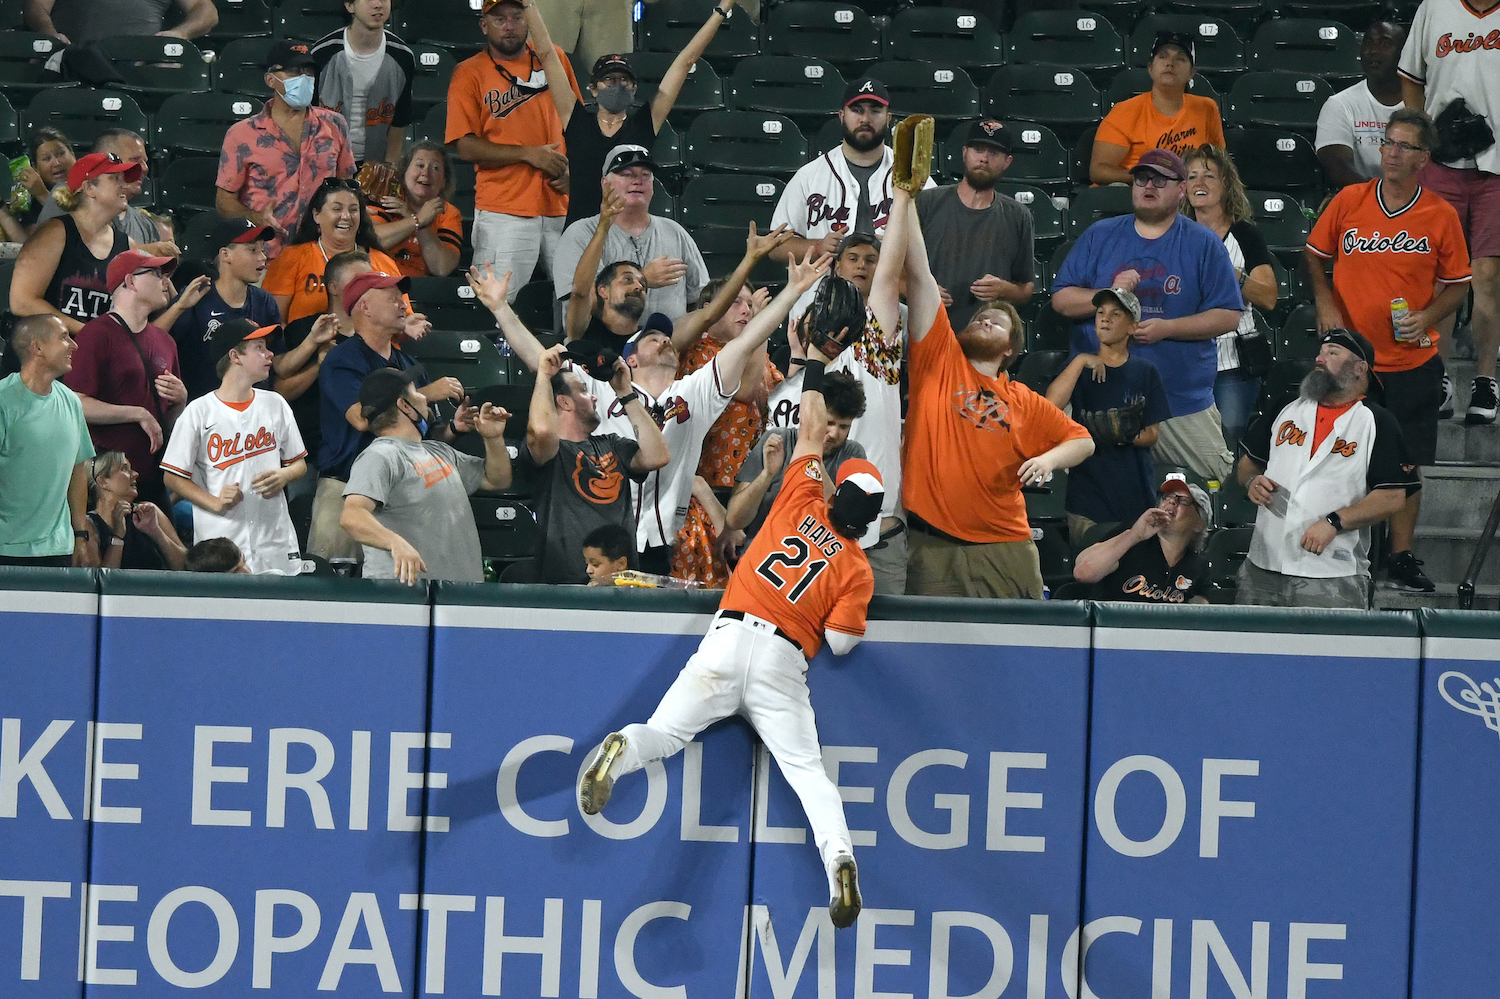 Austin Hays #21 of the Baltimore Orioles can not get to a home run hit ball by Austin Riley #27 (not pictured) of the Atlanta Braves fifth inning during a baseball game at Oriole Park at Camden Yards on August 21, 2021 in Baltimore, Maryland.